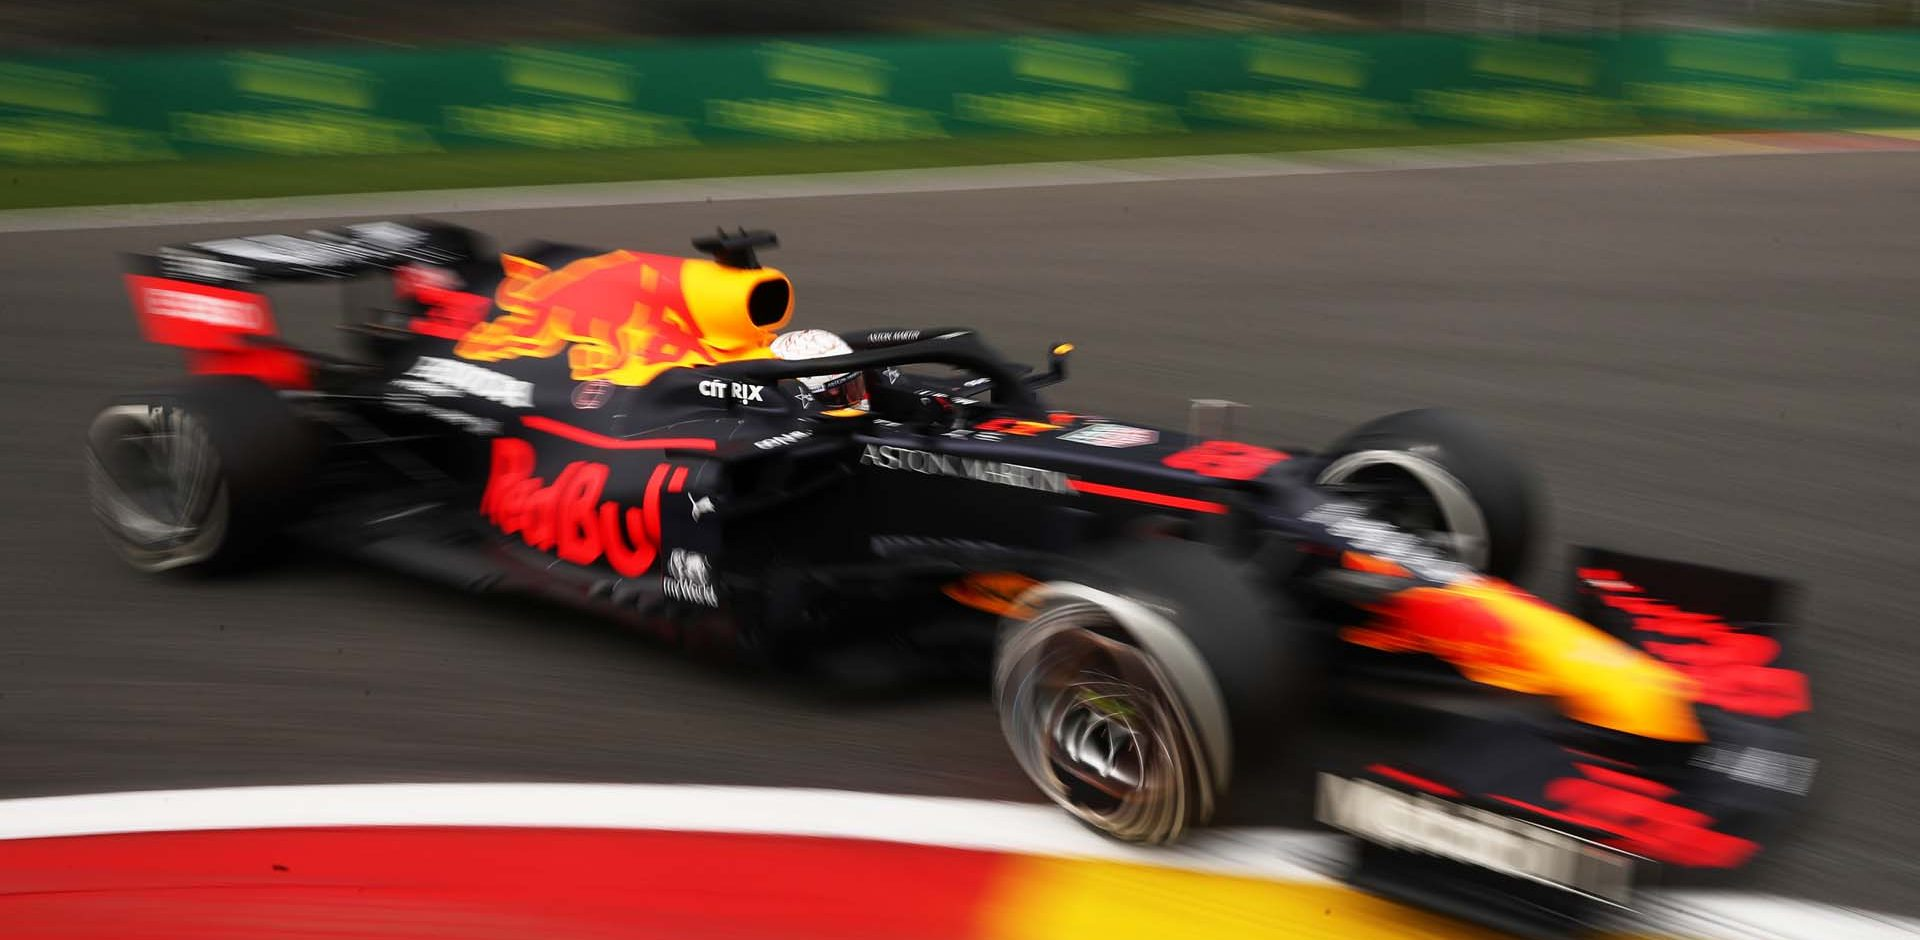 SPA, BELGIUM - AUGUST 28: Max Verstappen of the Netherlands driving the (33) Aston Martin Red Bull Racing RB16 on track during practice for the F1 Grand Prix of Belgium at Circuit de Spa-Francorchamps on August 28, 2020 in Spa, Belgium. (Photo by Francisco Seco/Pool via Getty Images)